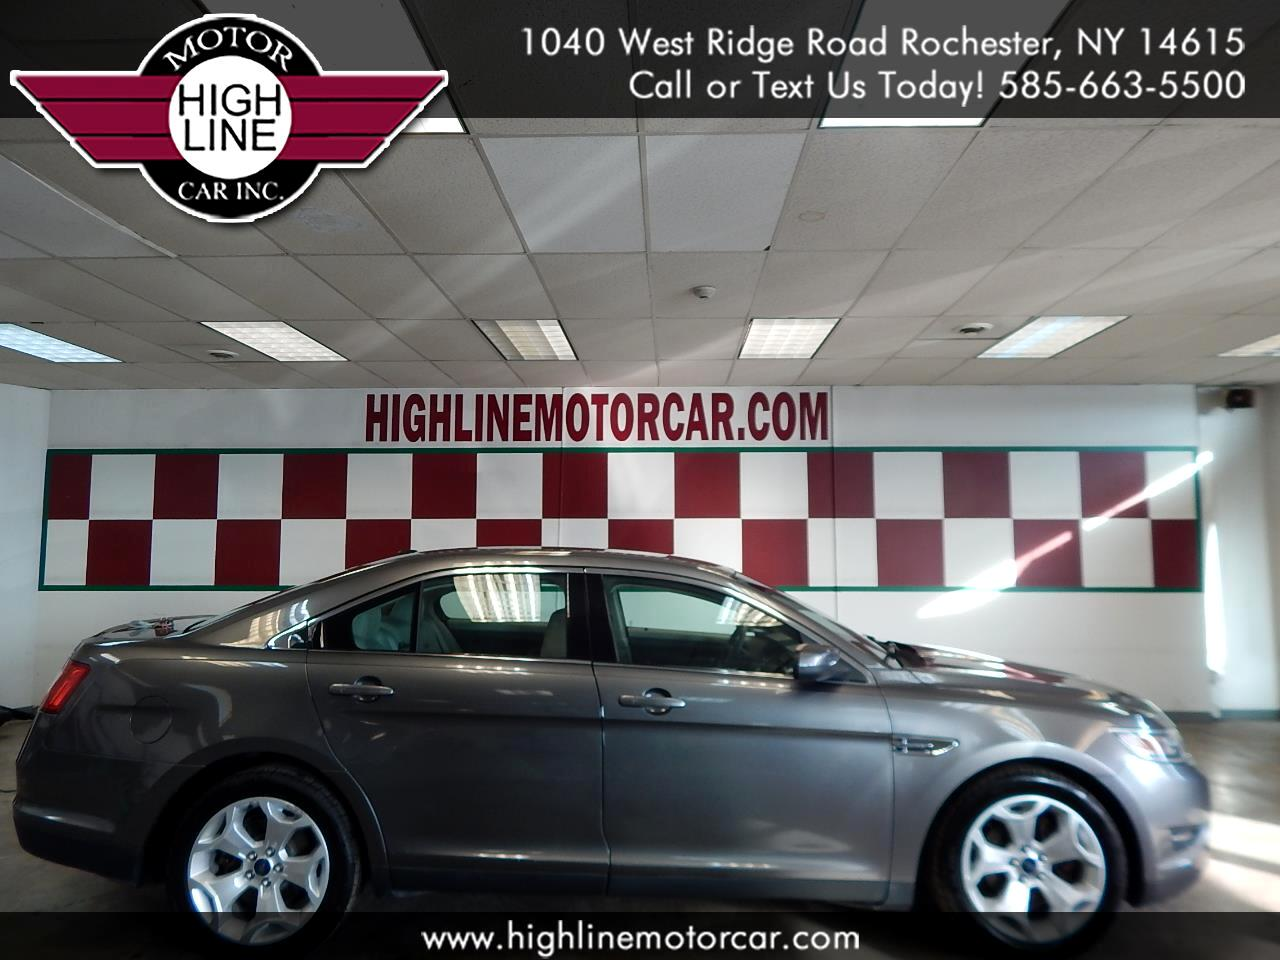 Ford Taurus 4dr Sdn SEL FWD 2011